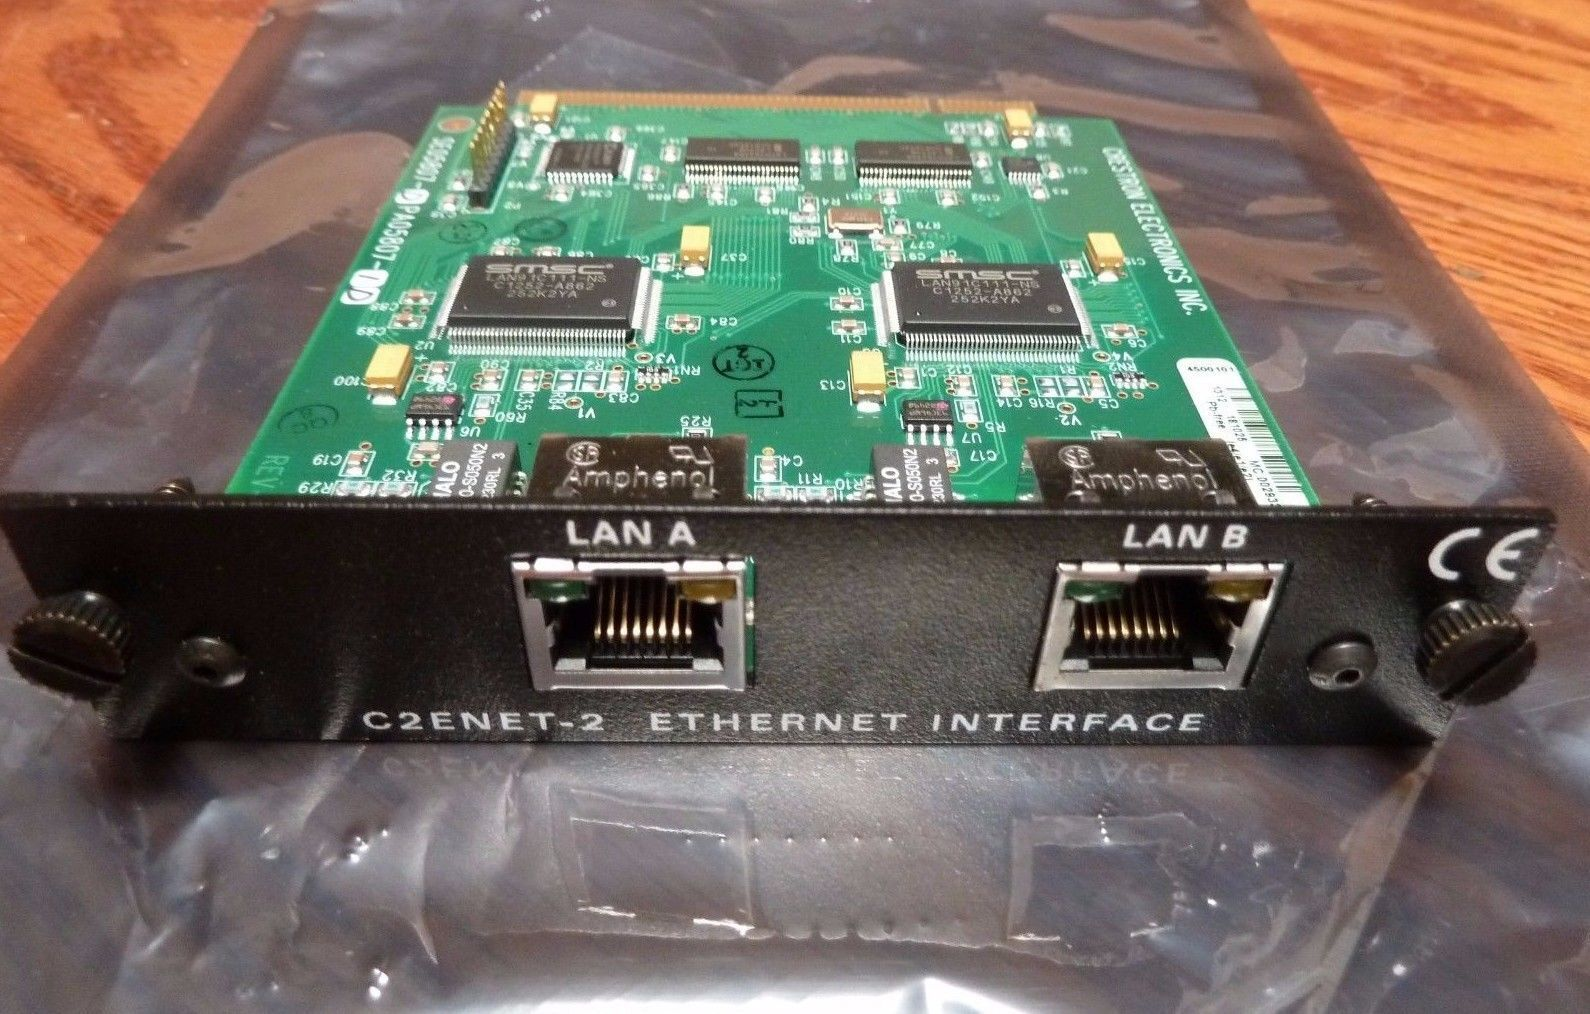 Crestron C2ENET-2 Dual Port Ethernet Card for PRO2 and AV2, Tested, Guarantee!!!